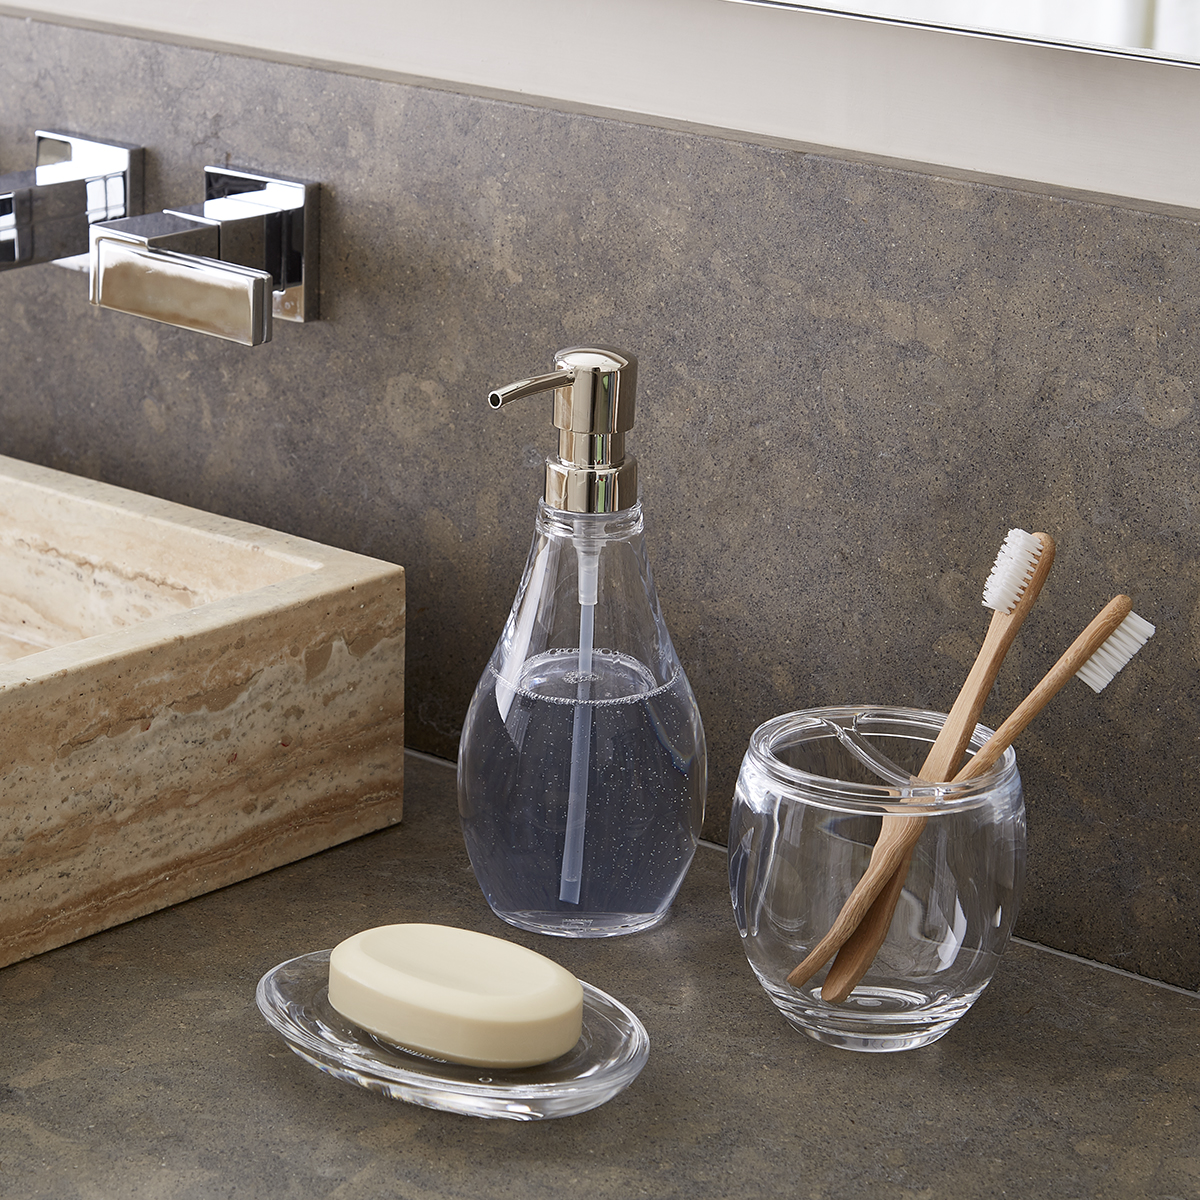 Bathroom accessories Red Clear Bathroom Accessories Sets The Container Store Umbra Droplet Acrylic Countertop Bathroom Set The Container Store